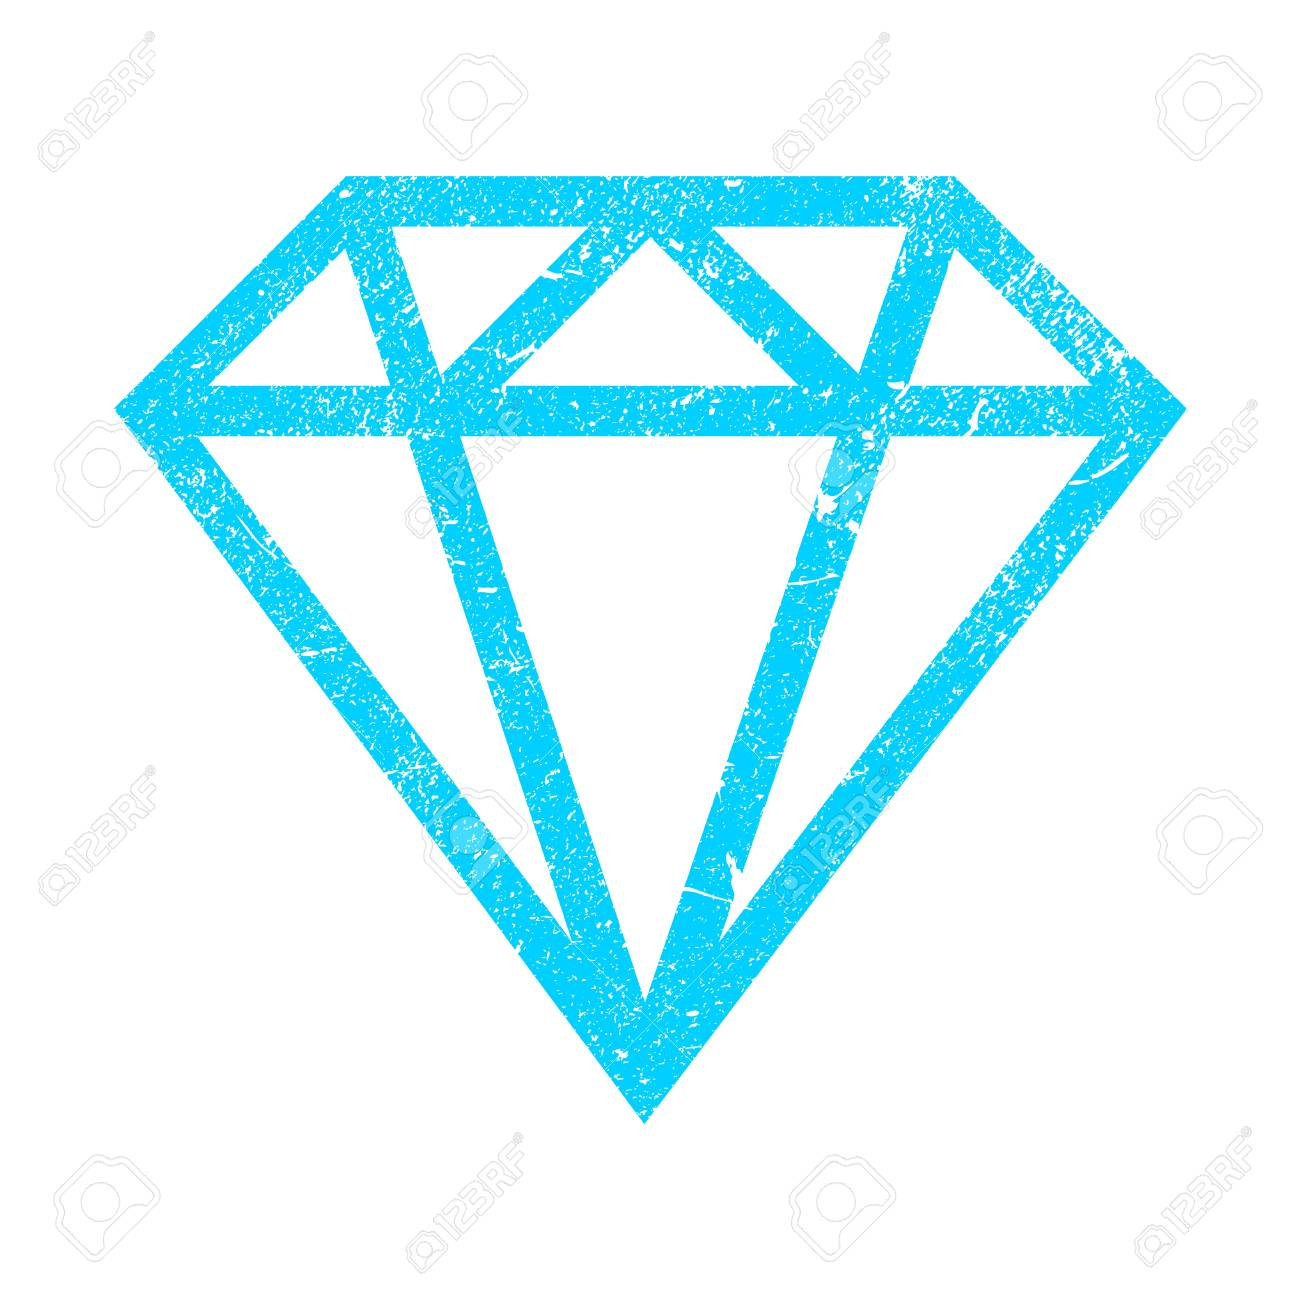 diamond vector icon royalty free cliparts vectors and stock rh 123rf com diamond vector logo diamond vector art